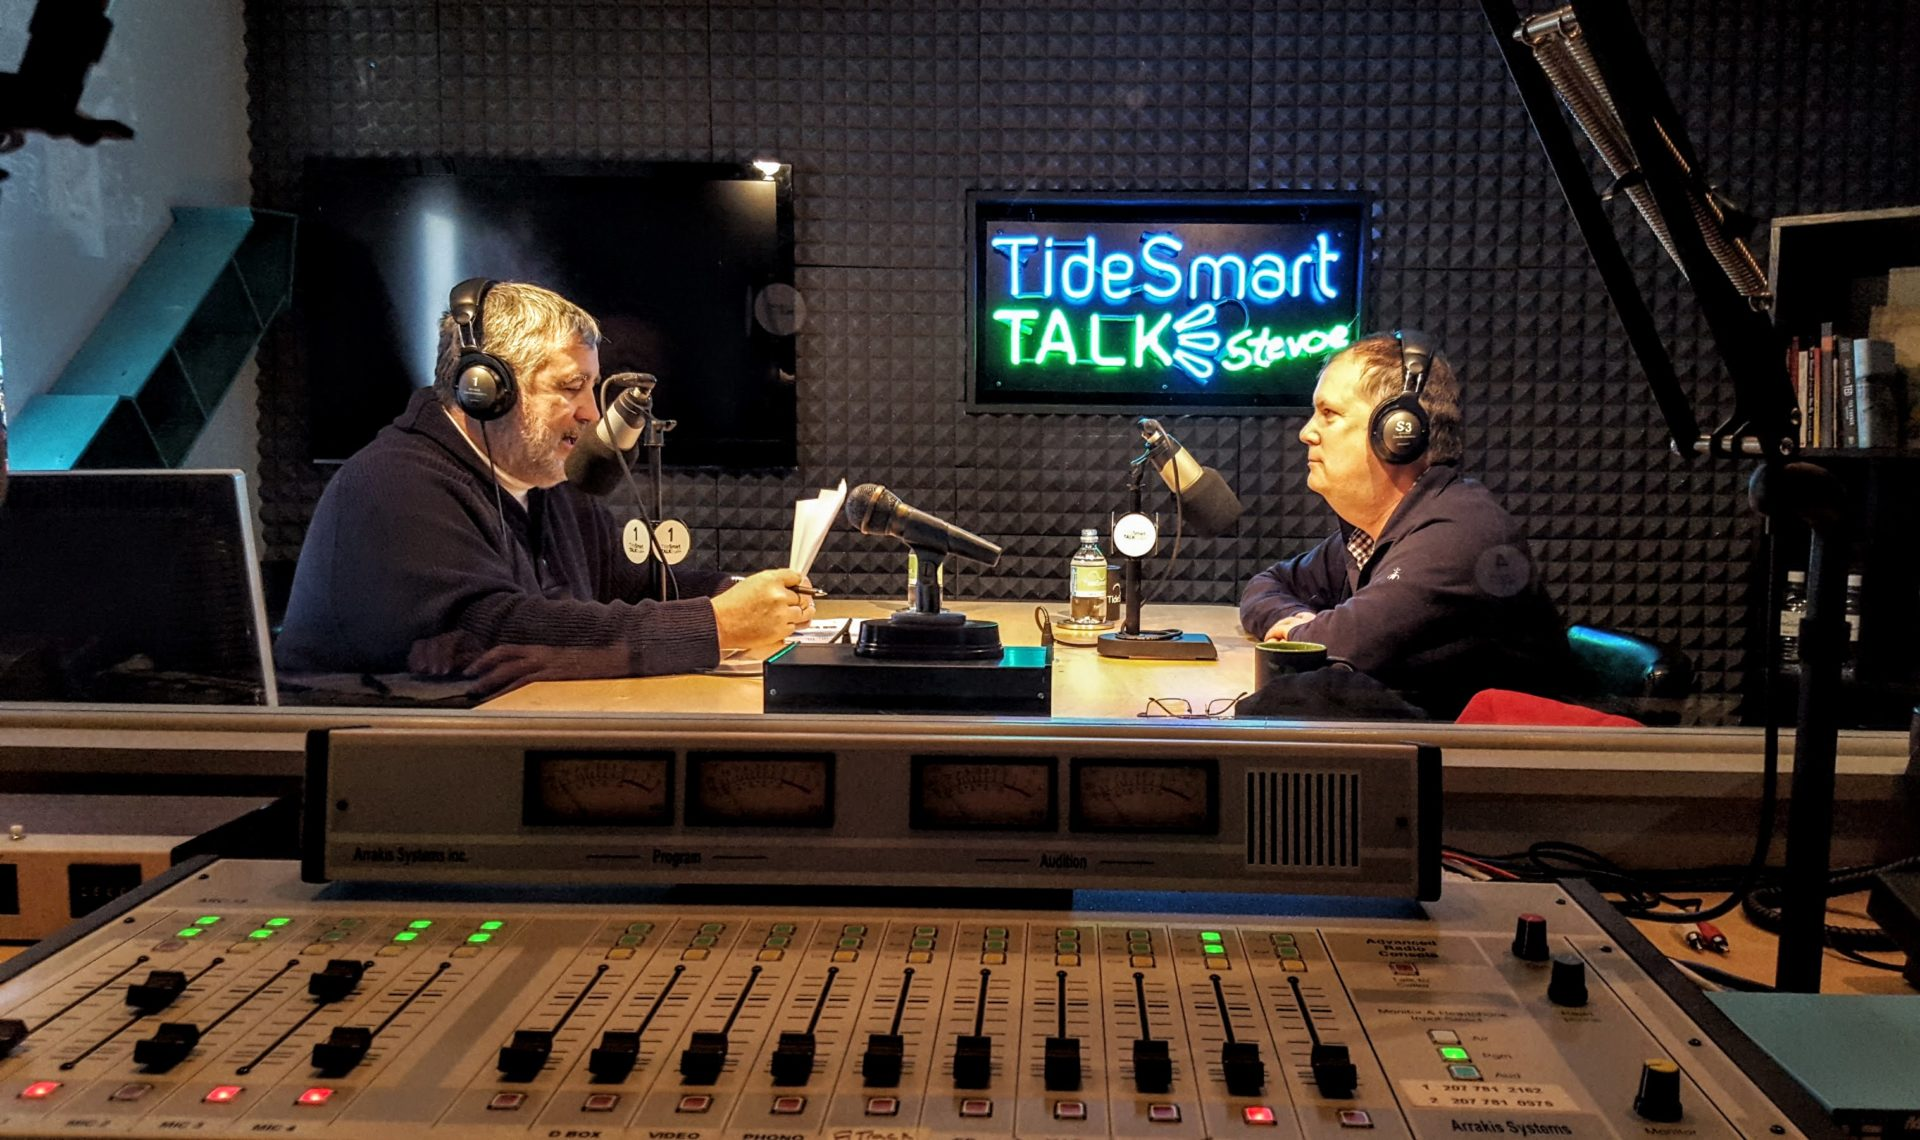 Host of TideSmart Talk with Stevoe, Steve Woods, welcomed author of Appalachian Odyssey, Jeff Ryan (at right).